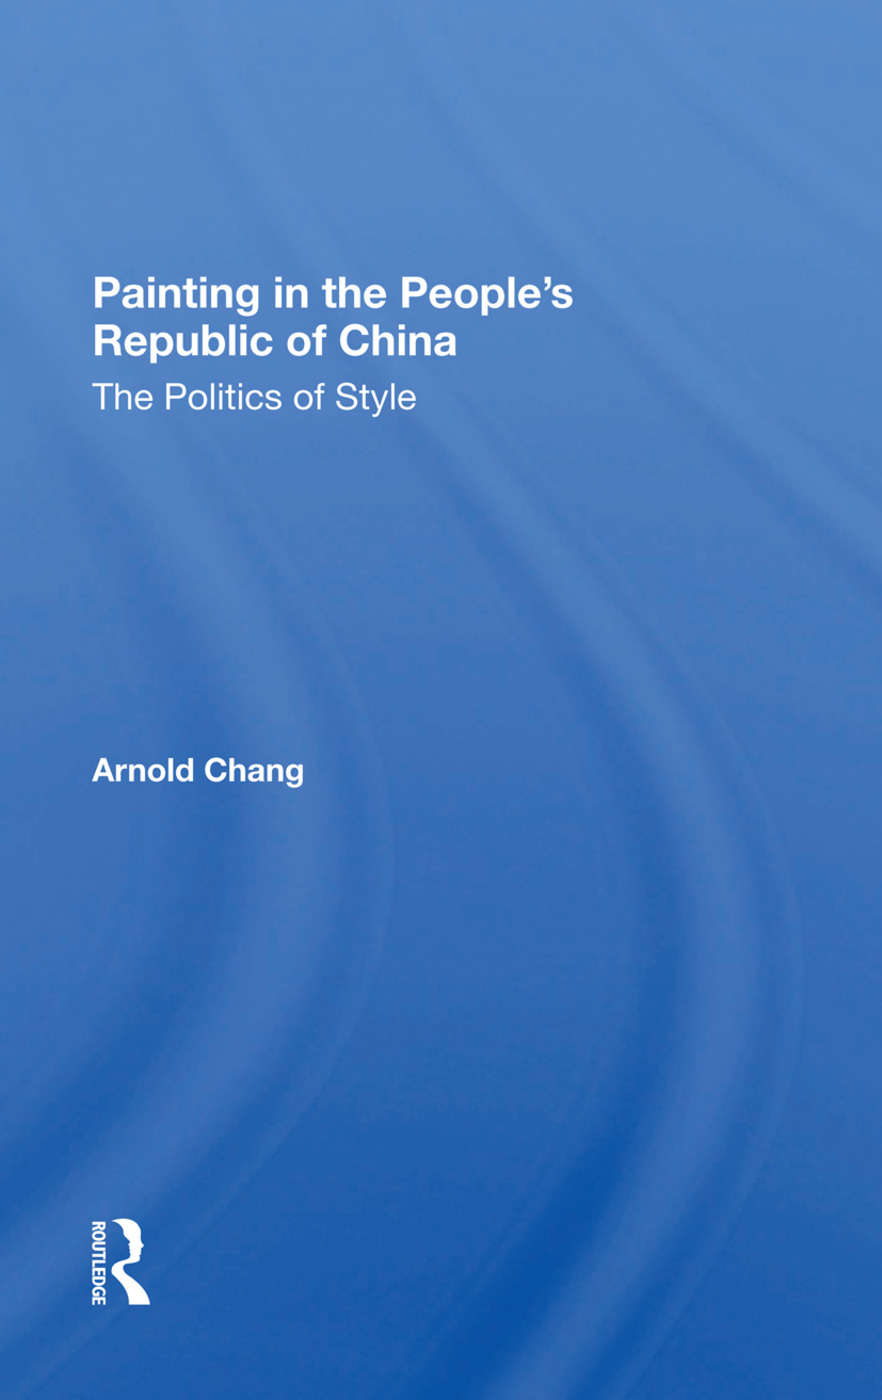 Painting In The People's Republic Of China